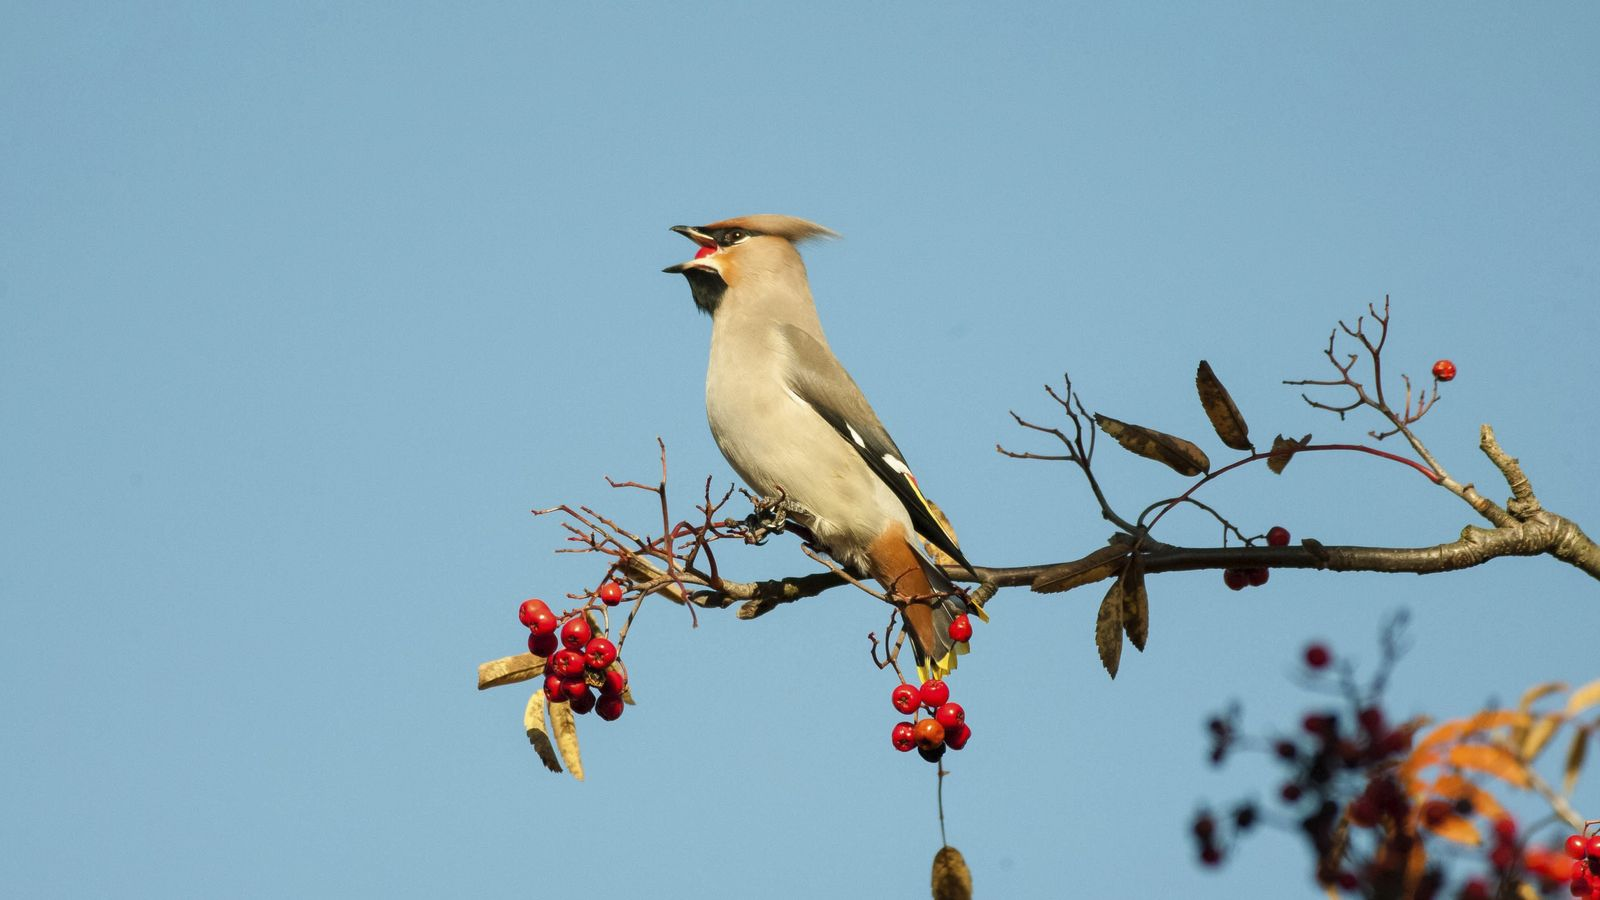 Waxwing return from Scandinavia and Russia to spend the winter in the UK, surviving on their ...